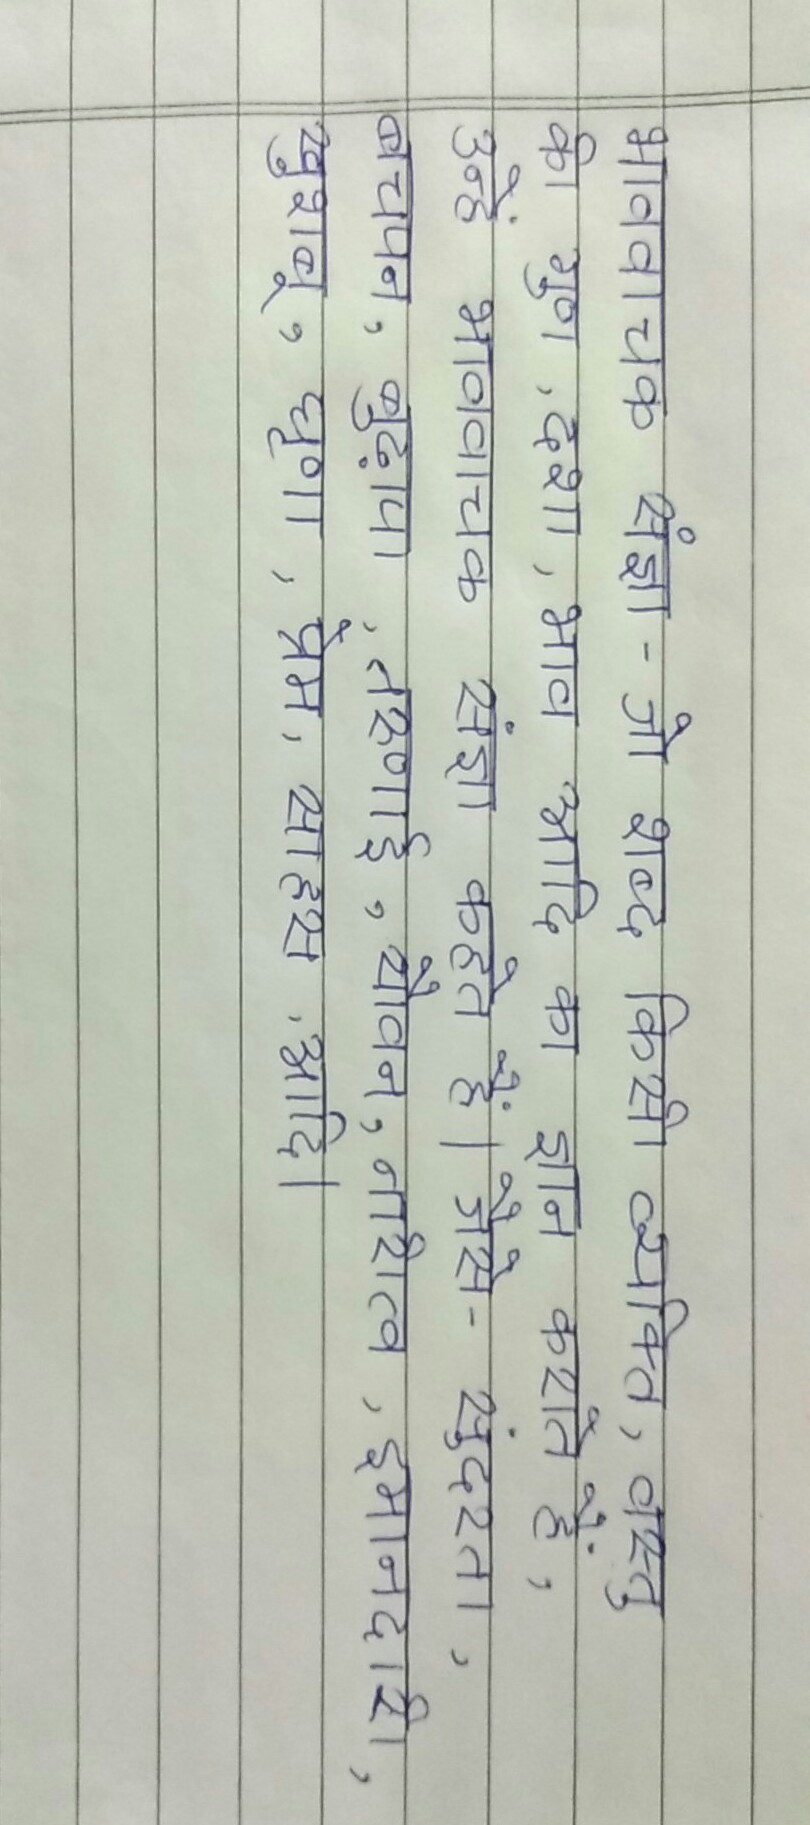 bhavvachak sangya in hindi - Brainly.in